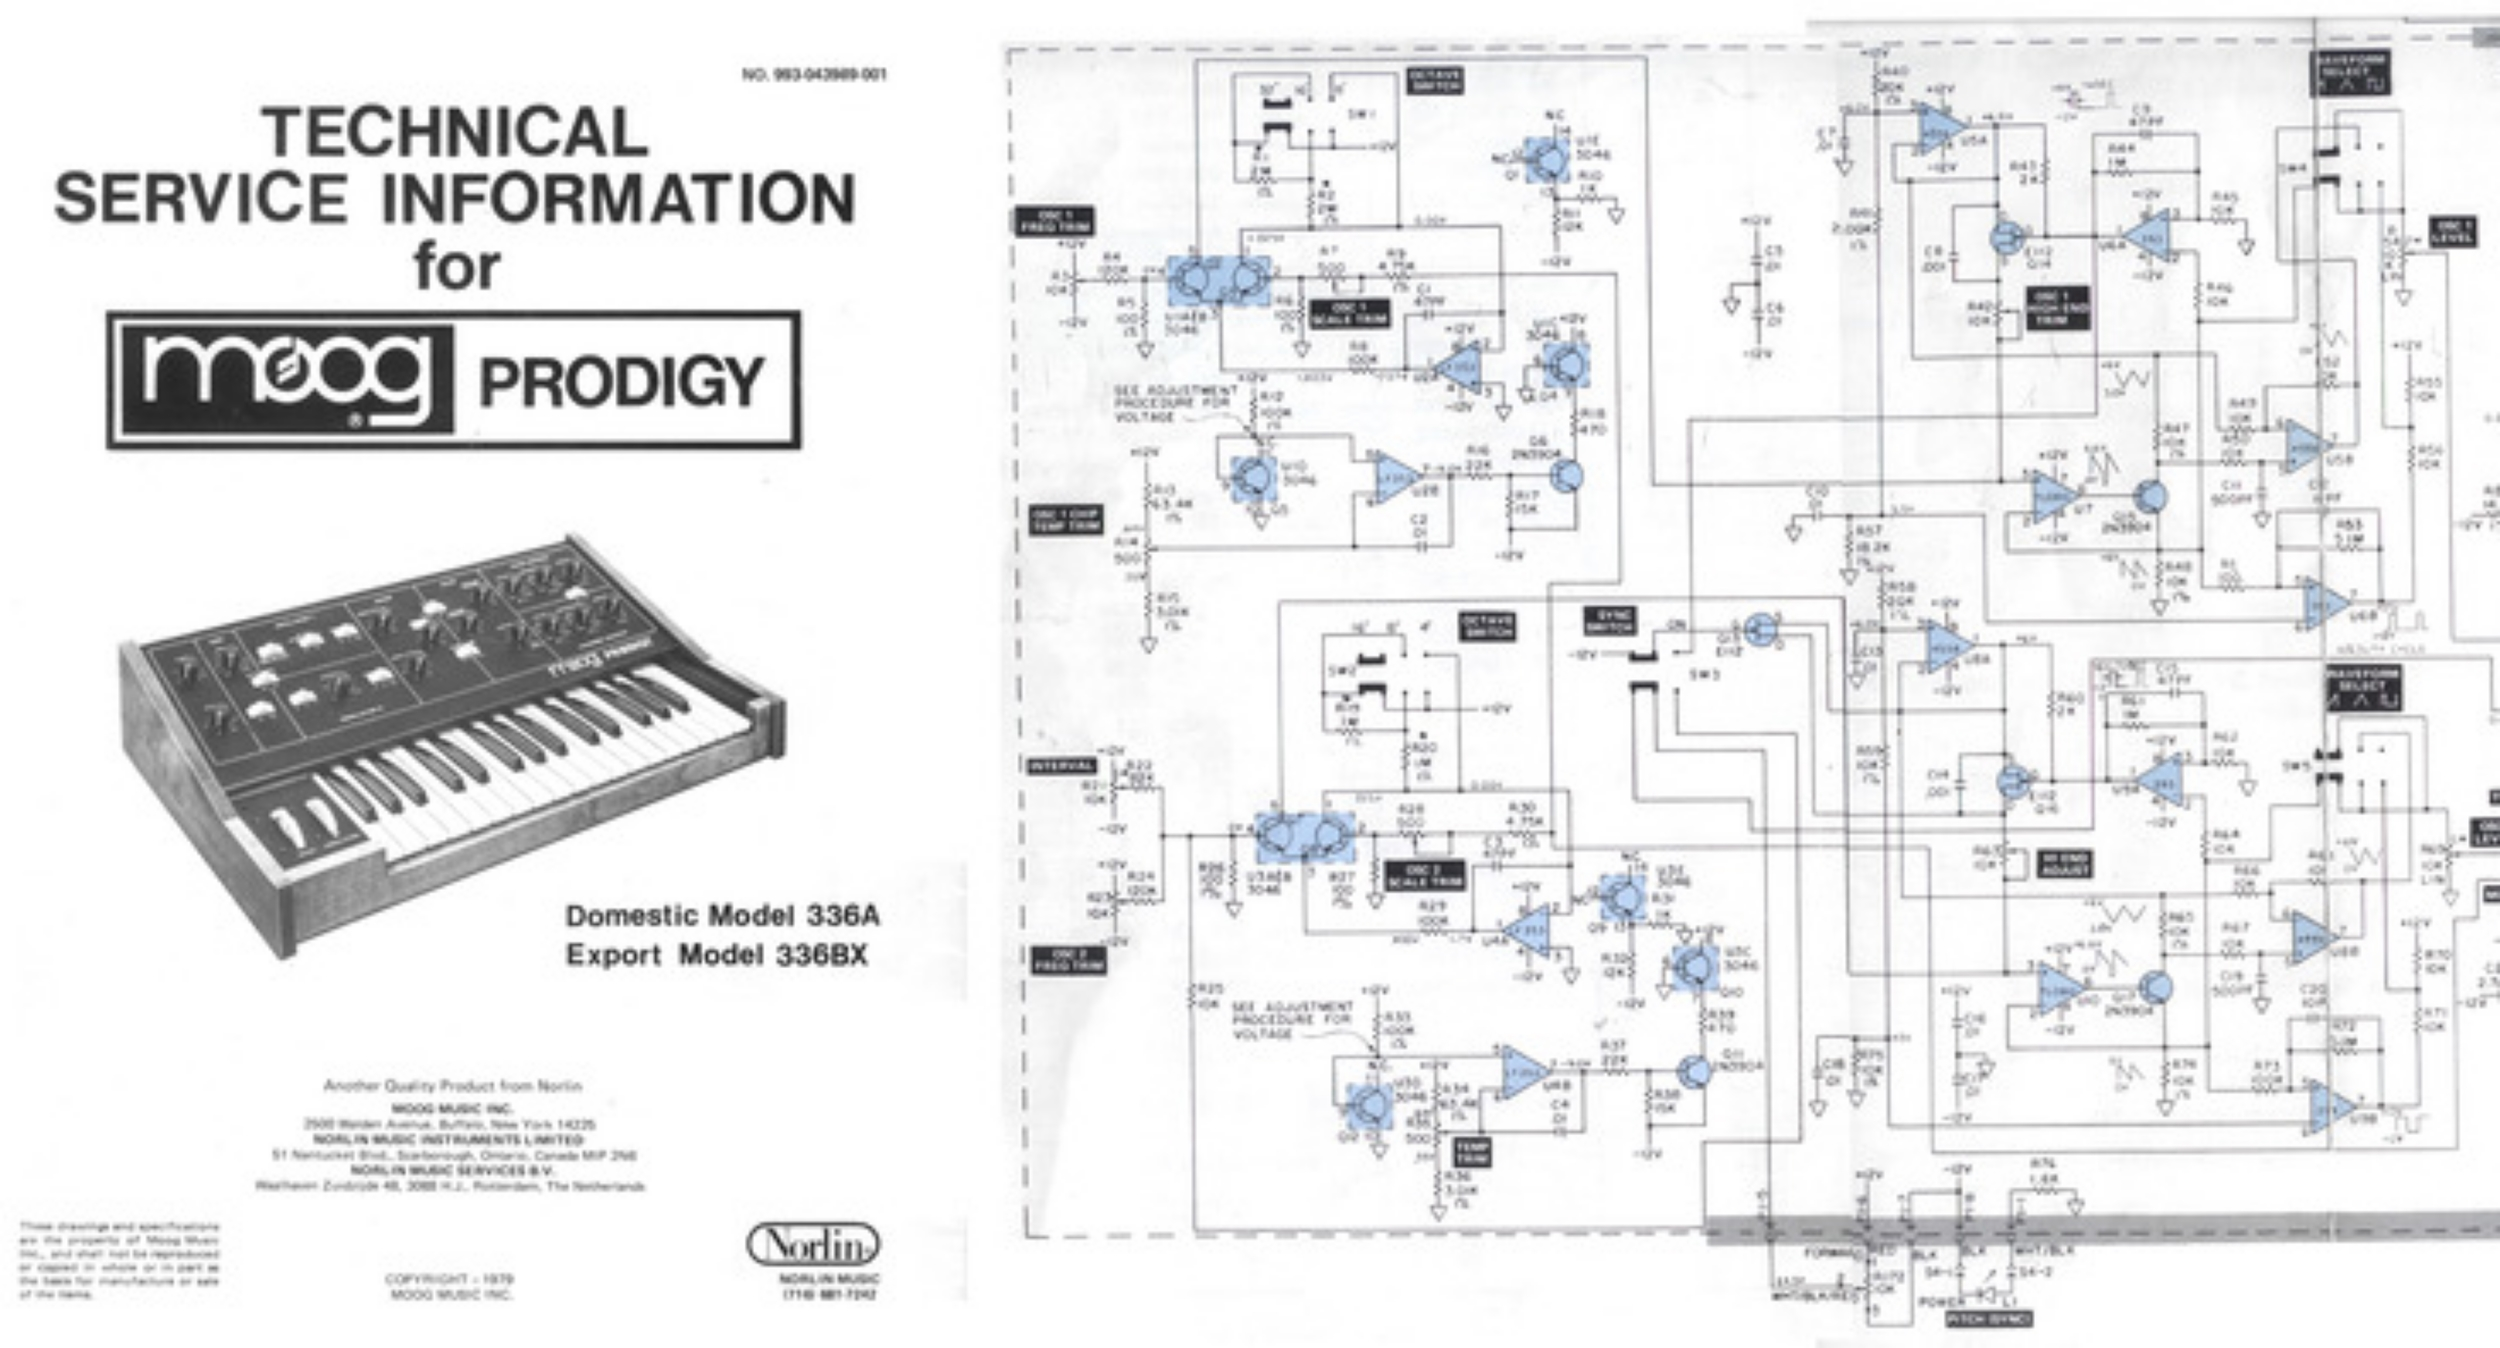 Jaguar Schematic Diagrams Wiring Diagram Schemes. Jaguar